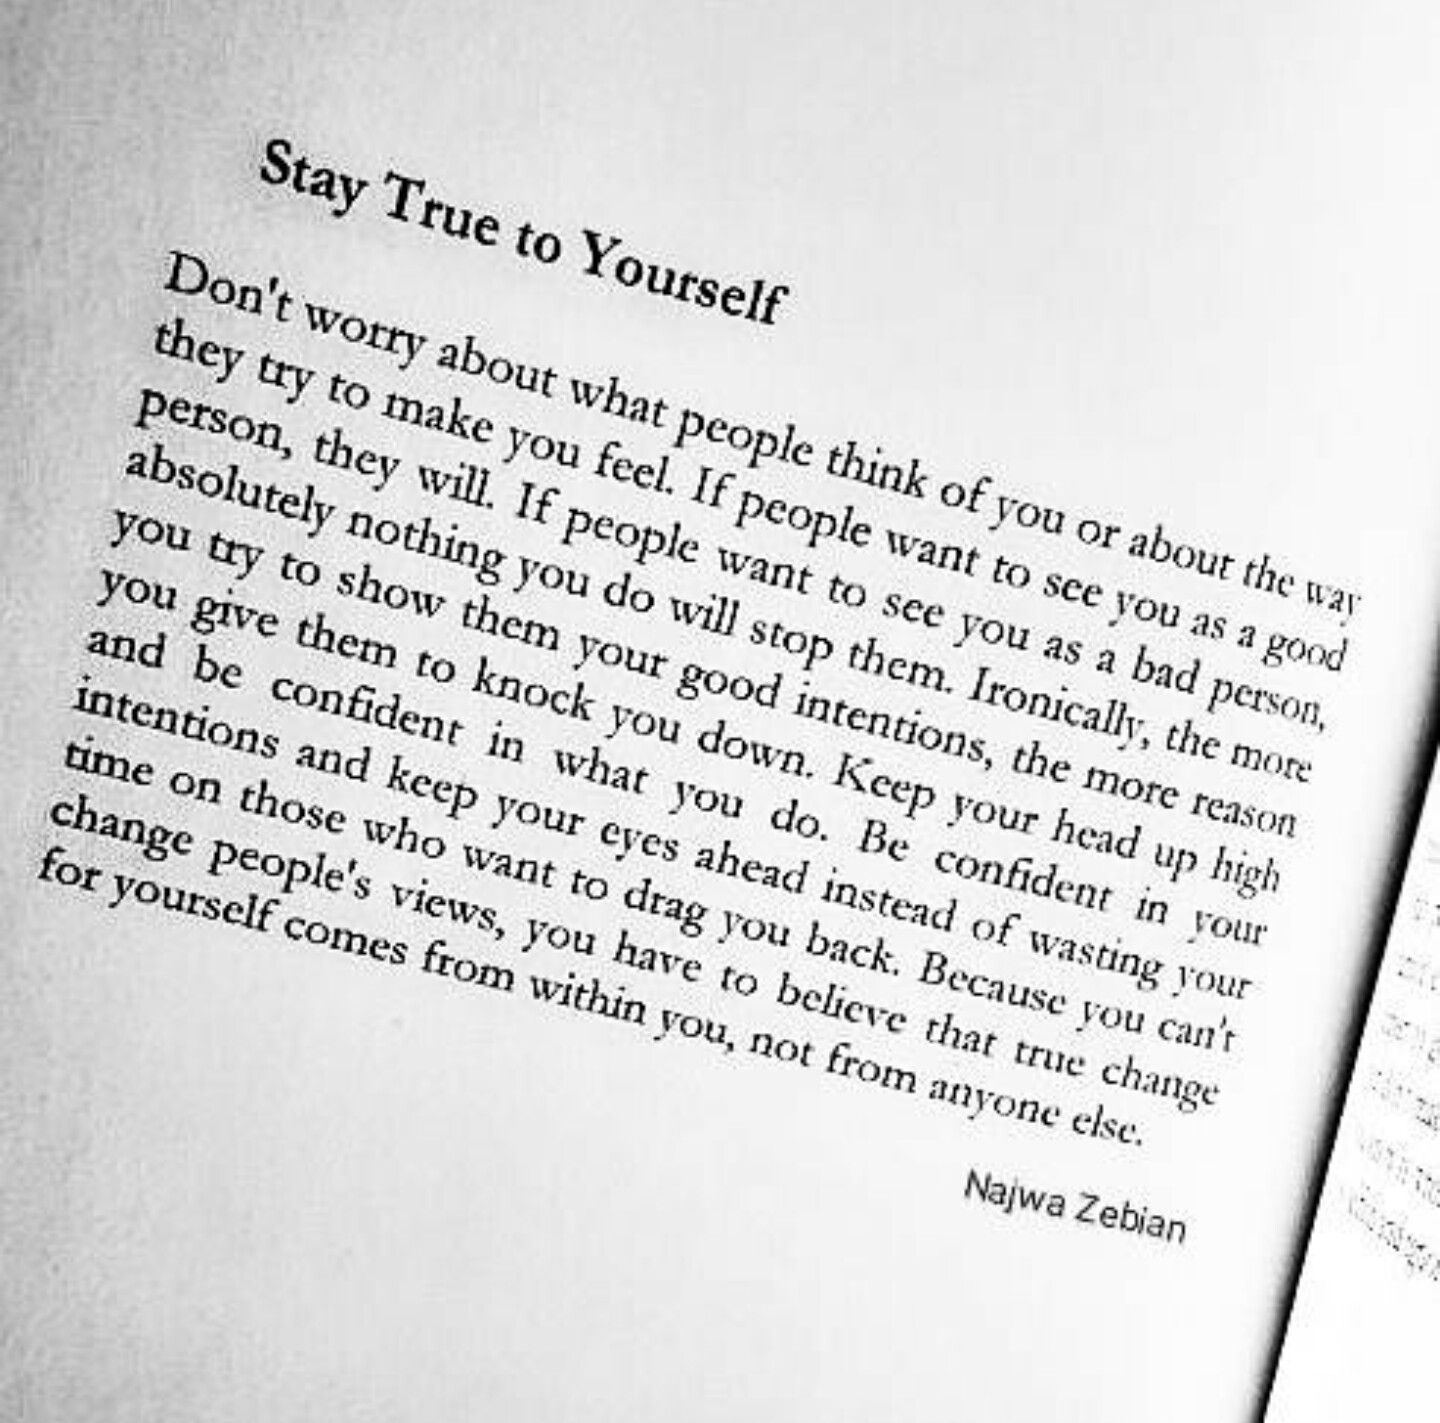 Stay true to yourself❤